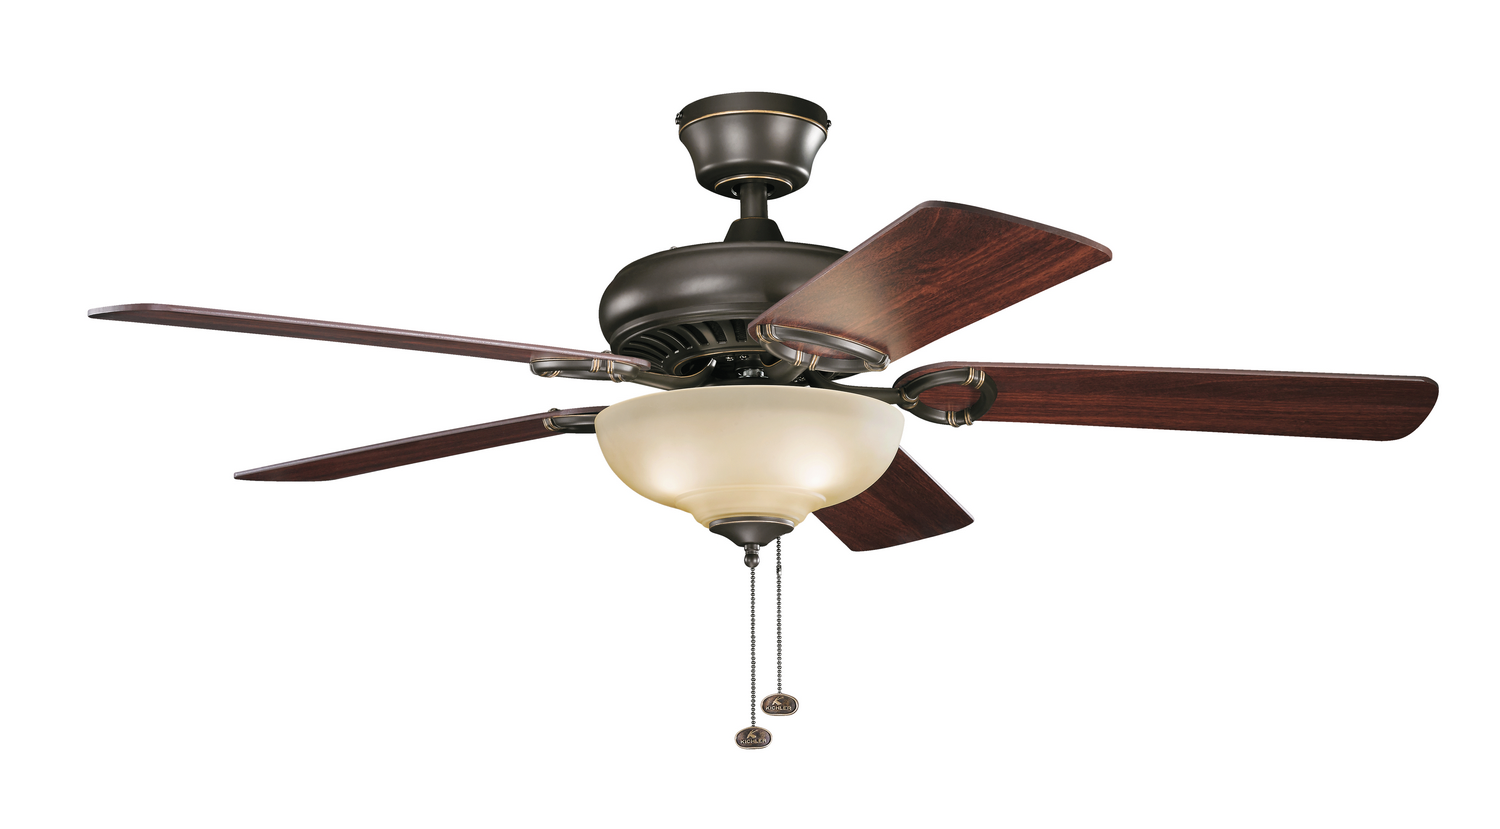 52 inchCeiling Fan from the Sutter Place Select collection by Kichler 339211OZ